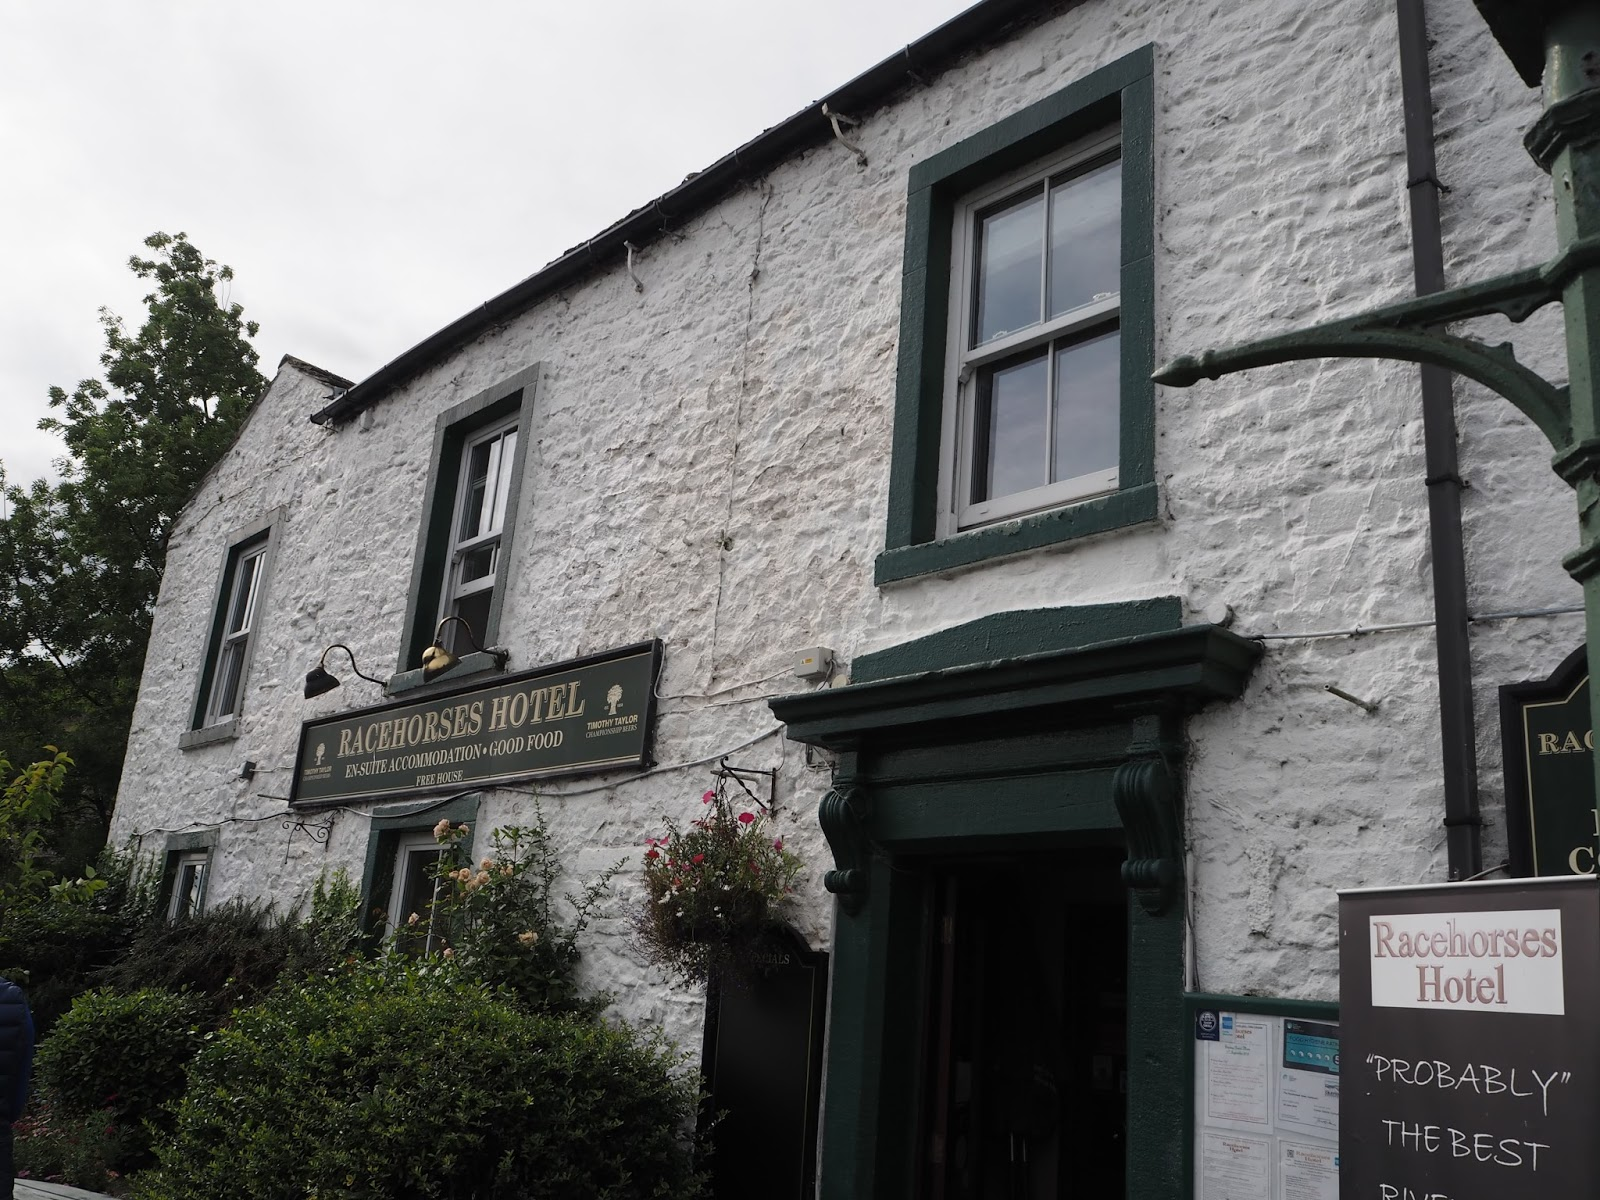 The Racehorses Hotel, Kettlewell